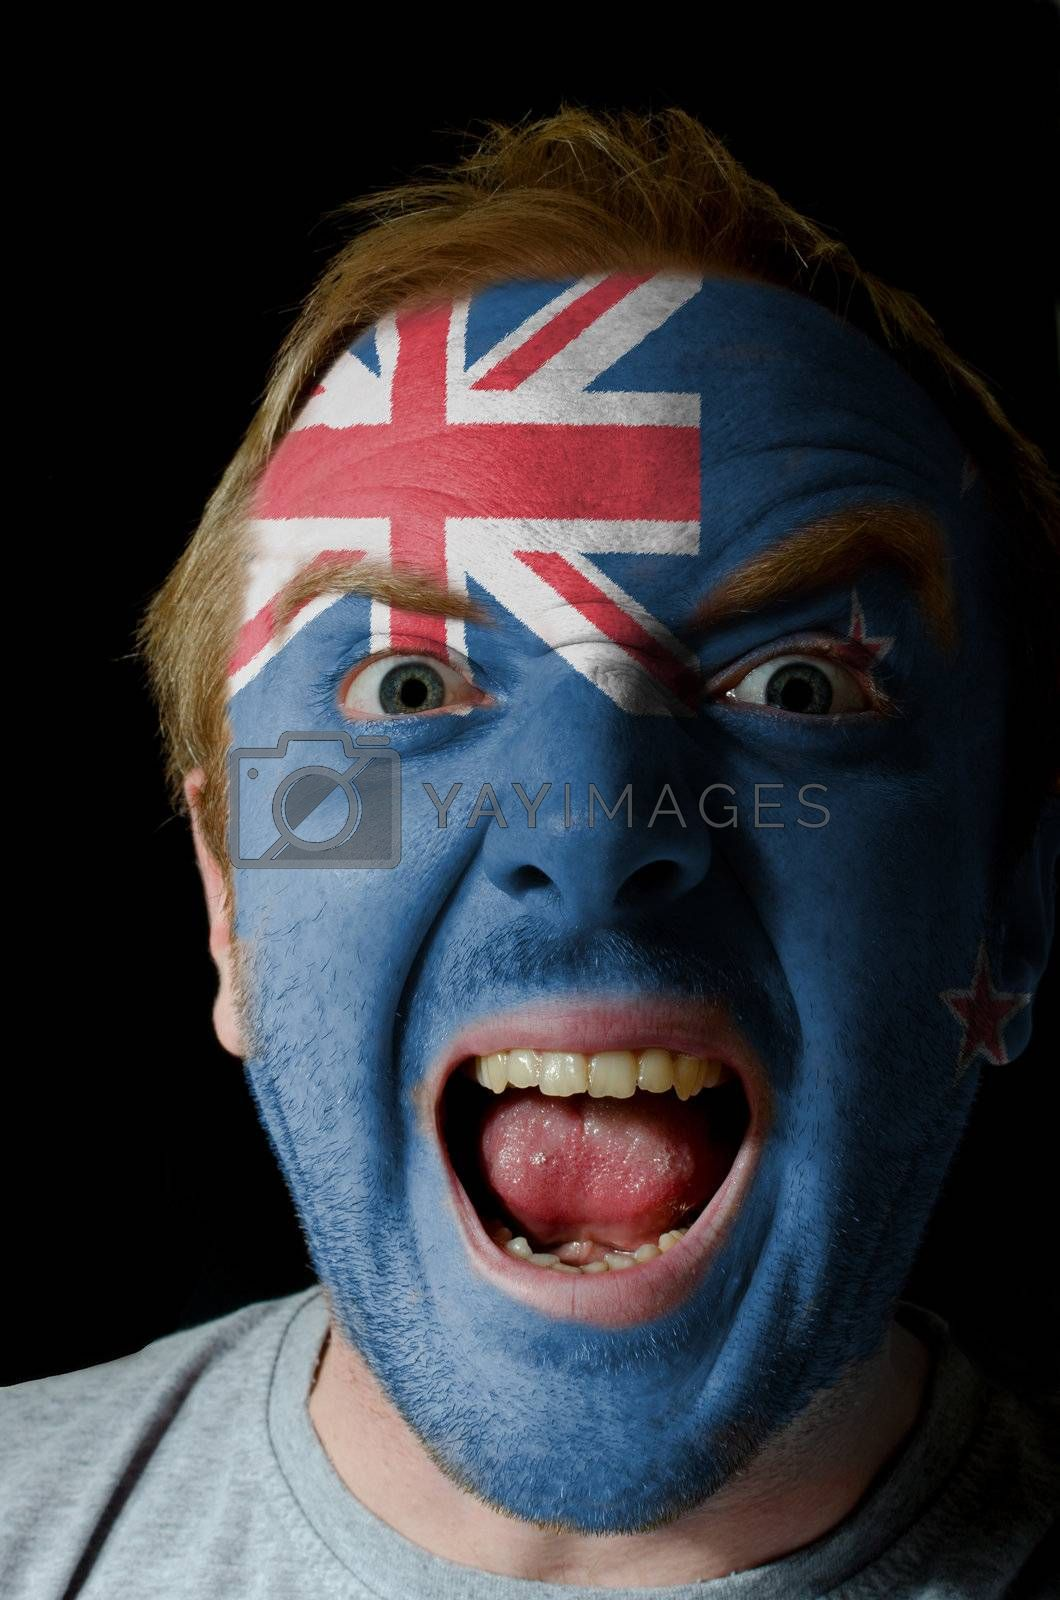 Low key portrait of an angry man whose face is painted in colors of moldova flag